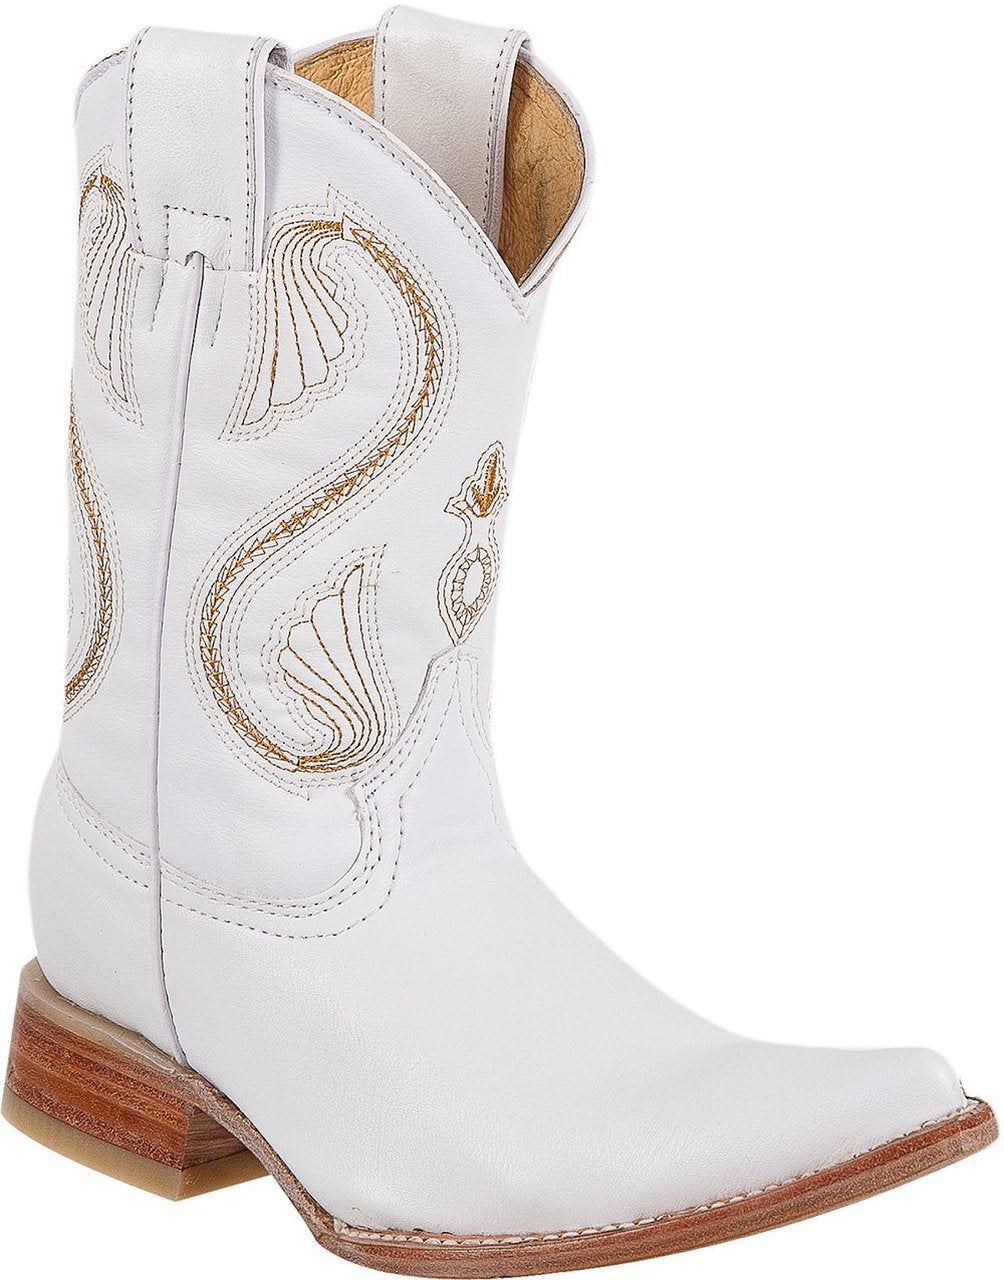 DIEGO'S Kids' White Goat Boots - Ch Toe